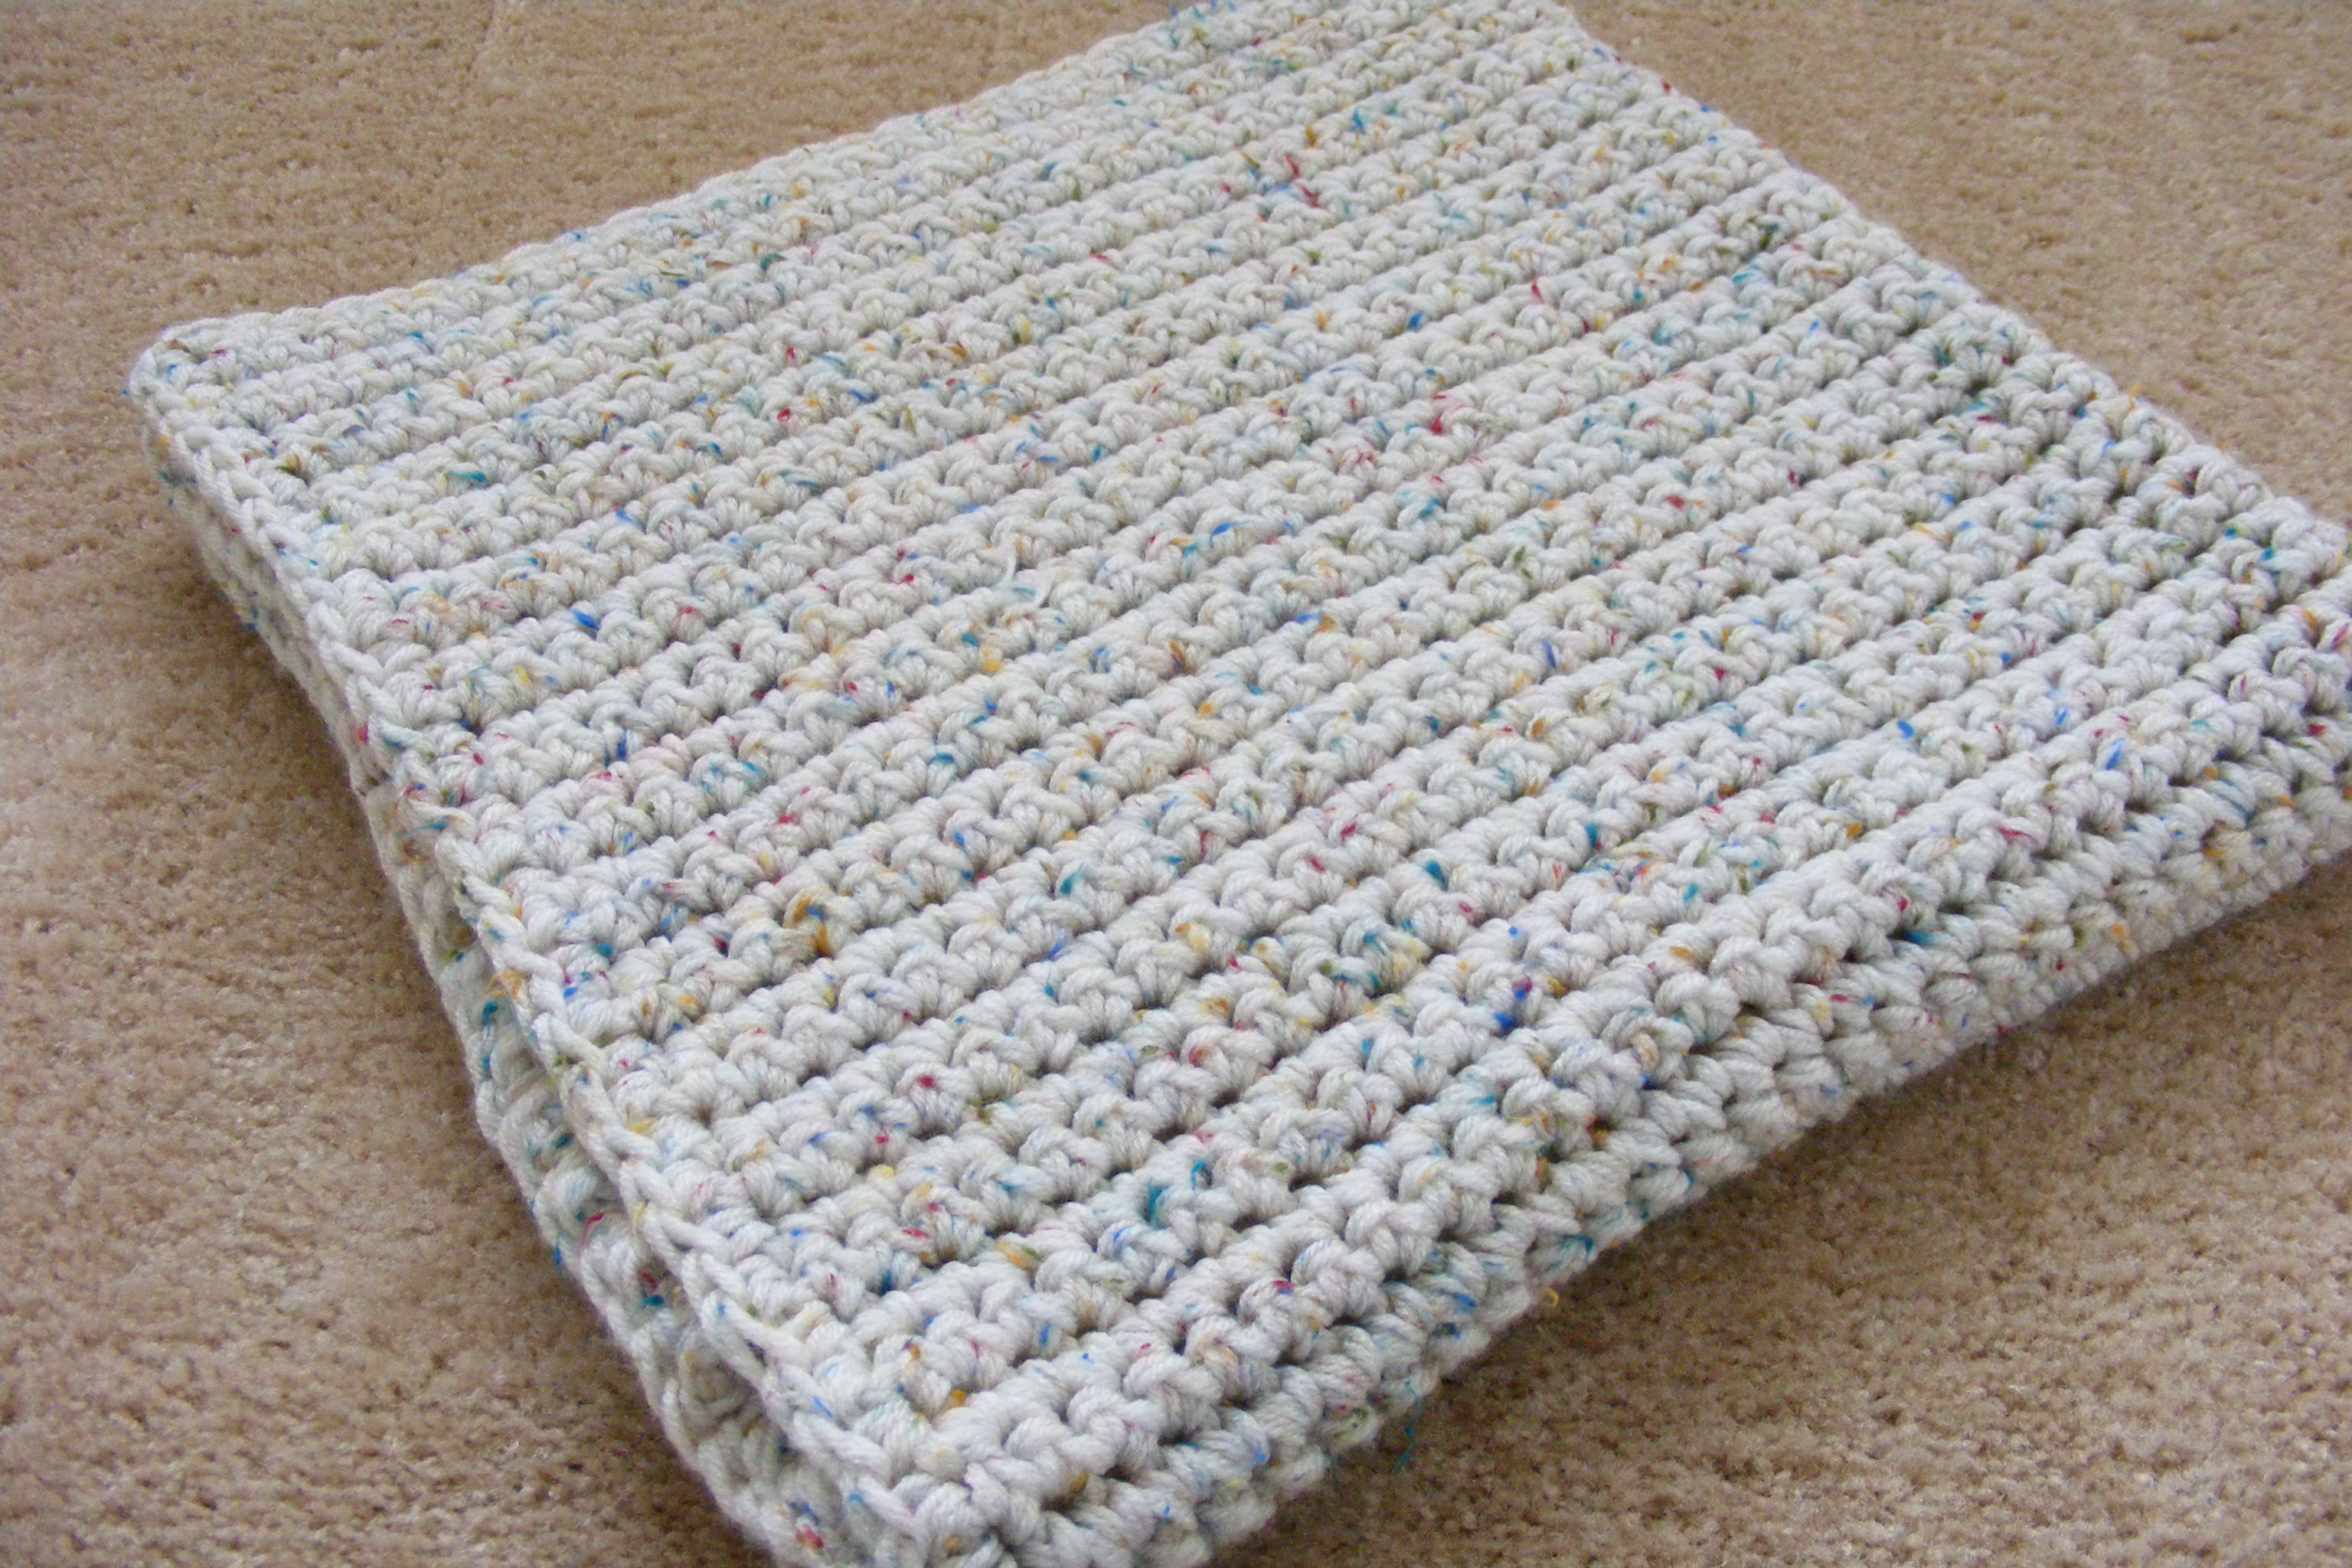 Single Crochet Patterns Inspirational Single Crochet Baby Blanket Of Single Crochet Patterns Inspirational Zig Zag Crochet Patterns Free Patterns